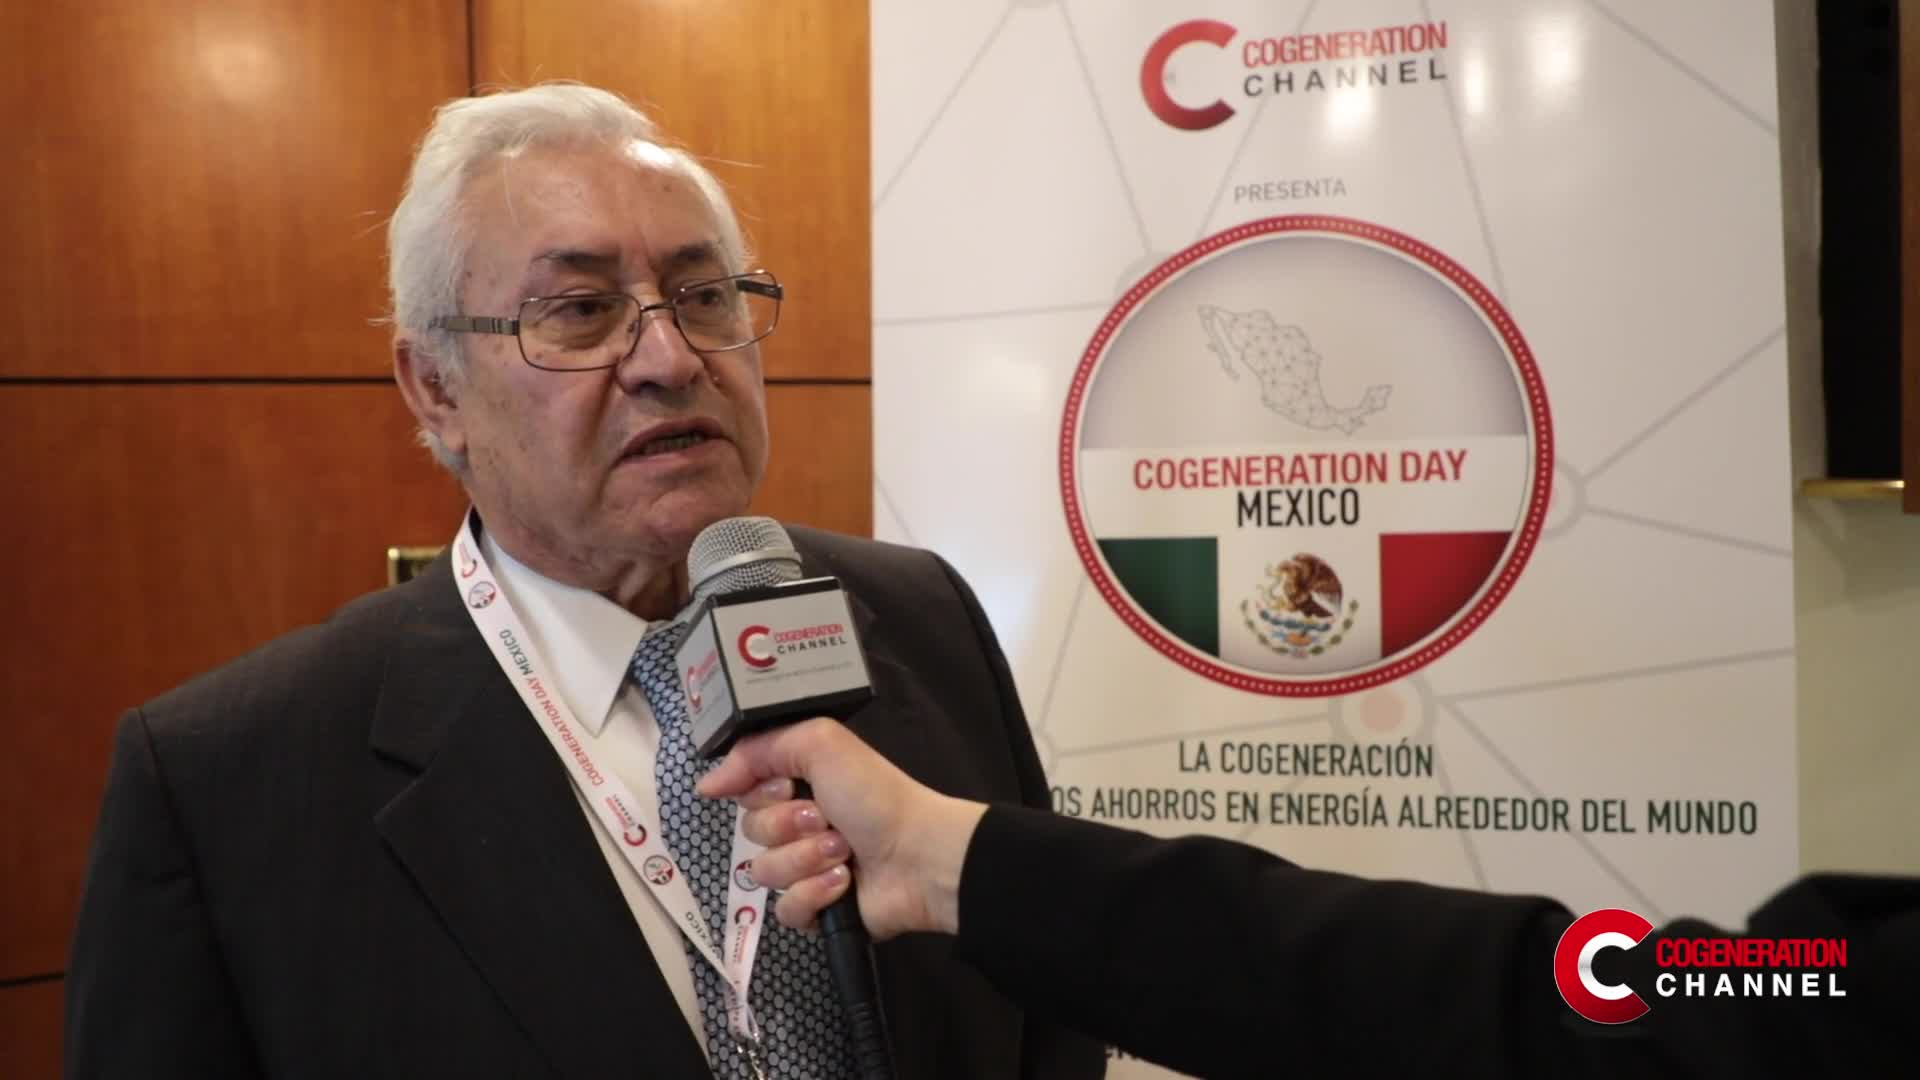 Cogeneration in Mexico, with challenges to be overcome and a potential of 20,000 MW